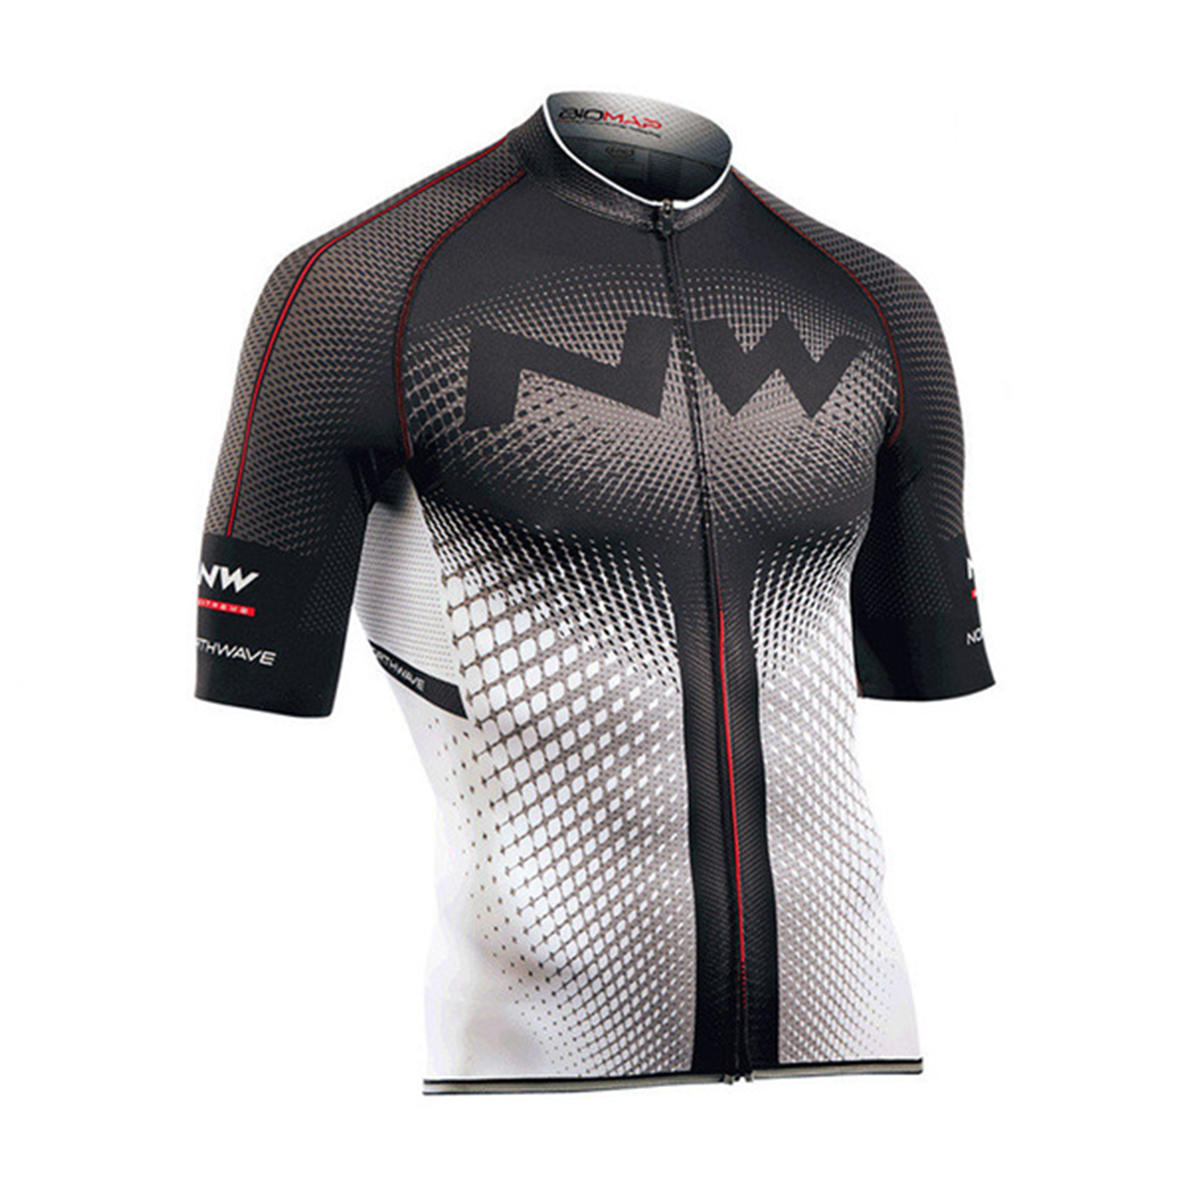 2017 NW Pro Team Men Summer Quick Dry Cycling Jersey Breathable Short Sleeve Bicycle Clothing Ropa Ciclismo Maillot Bike Clothes new team pro men cycling jersey ciclismo ropa bike jerseys set bycicle clothing short sleeve summer ciclismo maillot